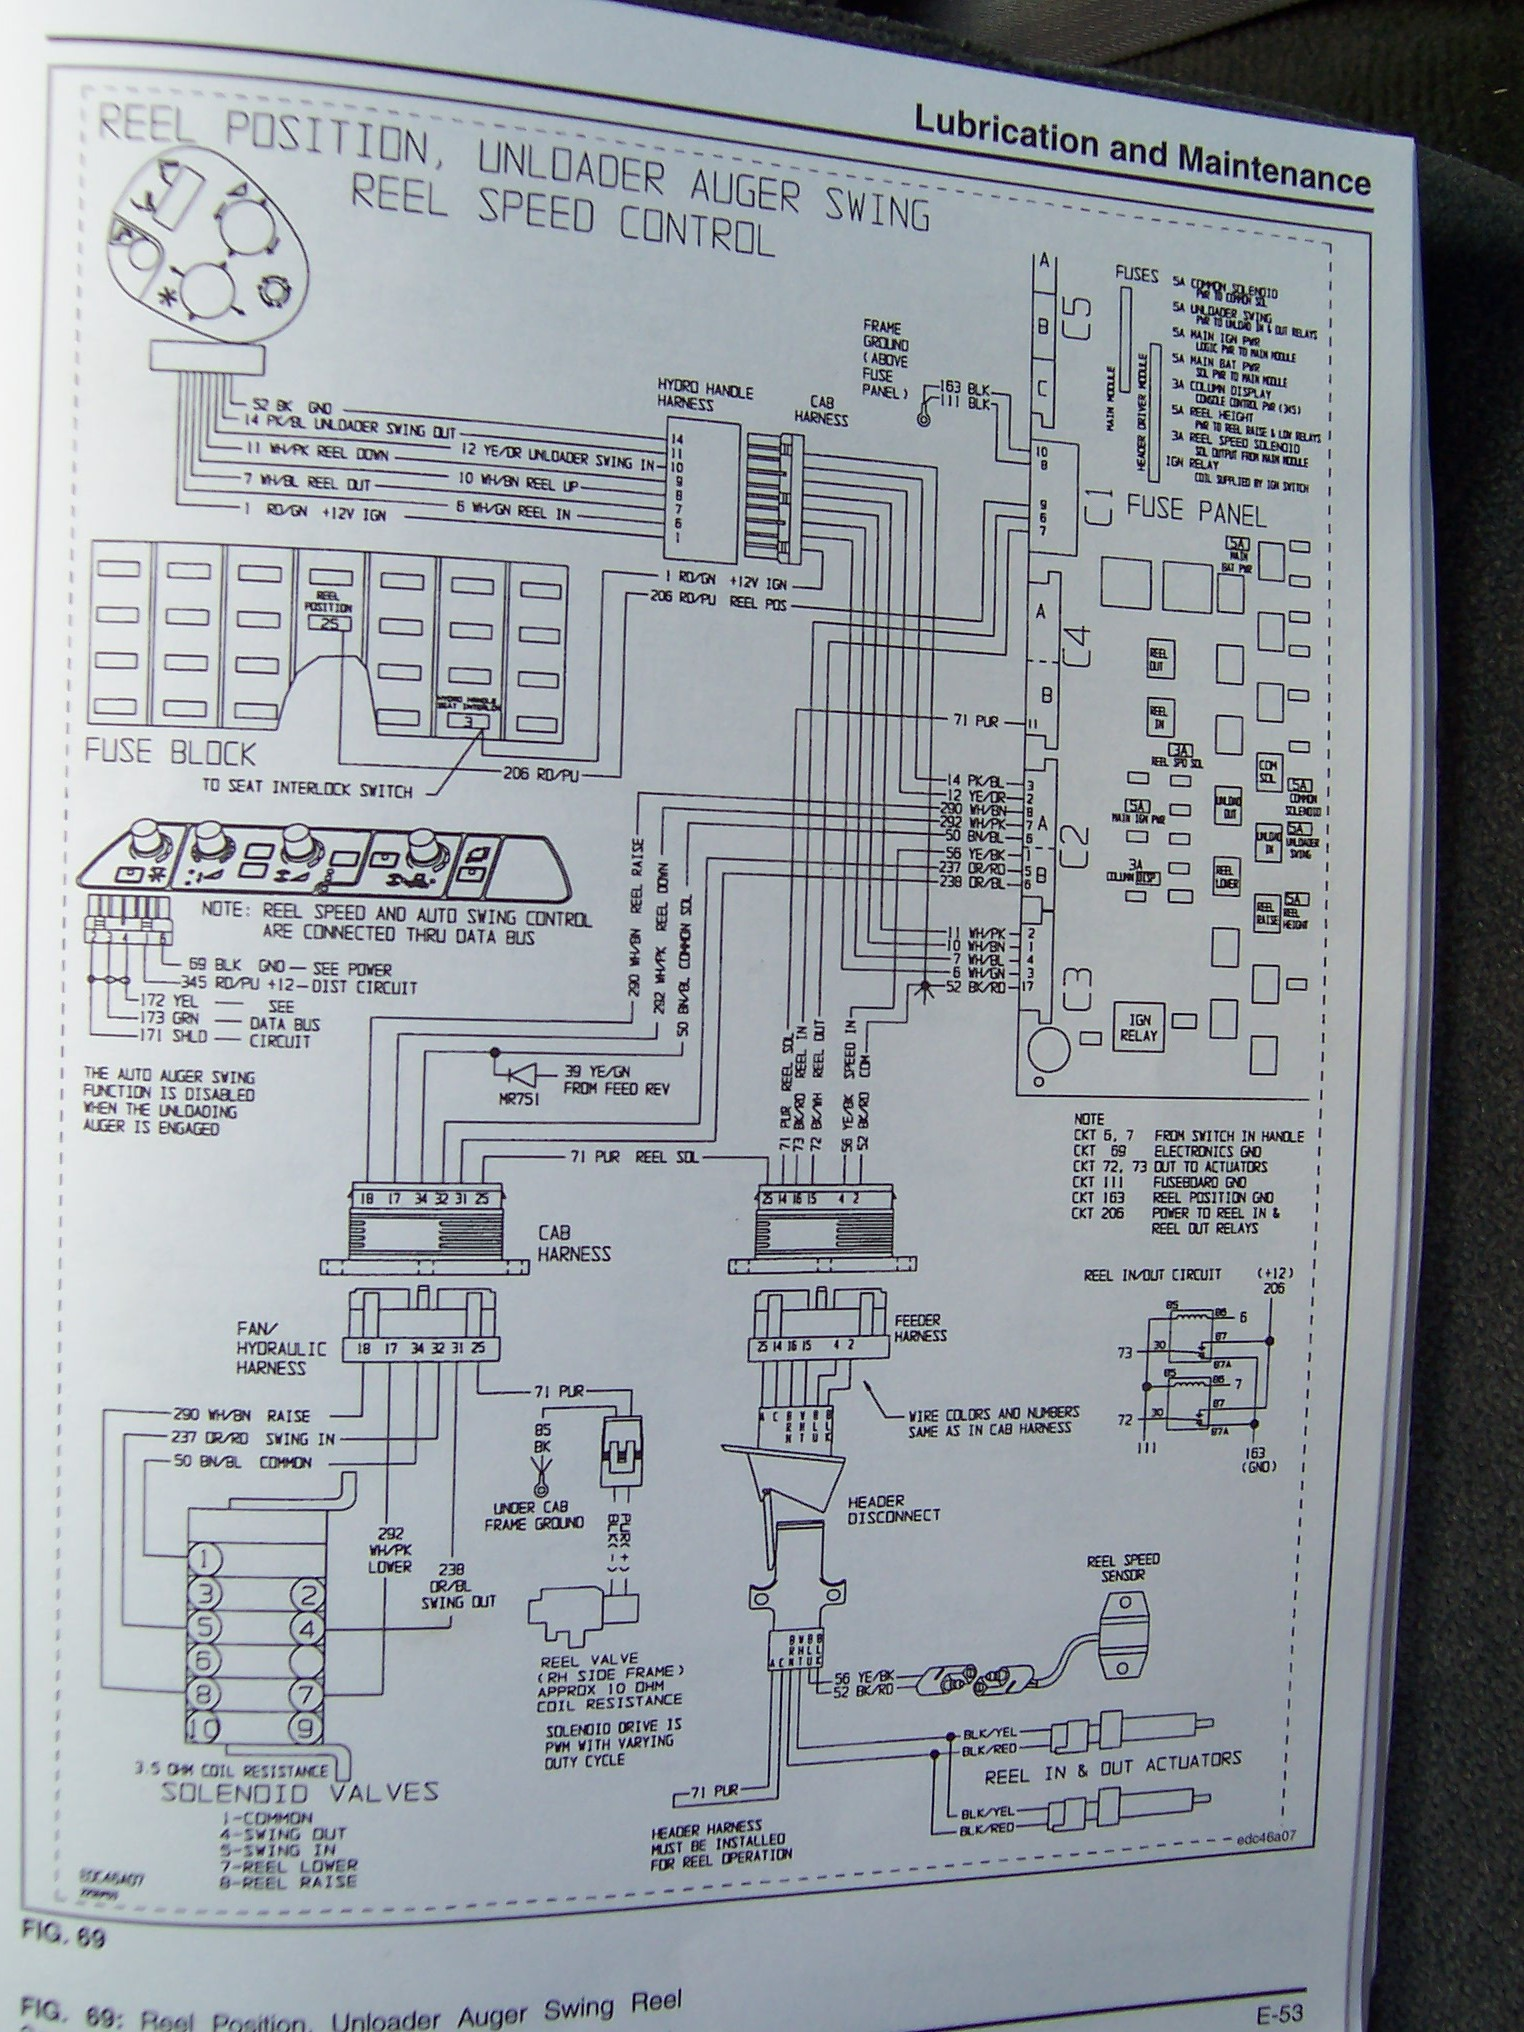 Wiring diagram for Automatic Header Height - 93' and up R65 or R75 | The  Combine ForumThe Combine Forum